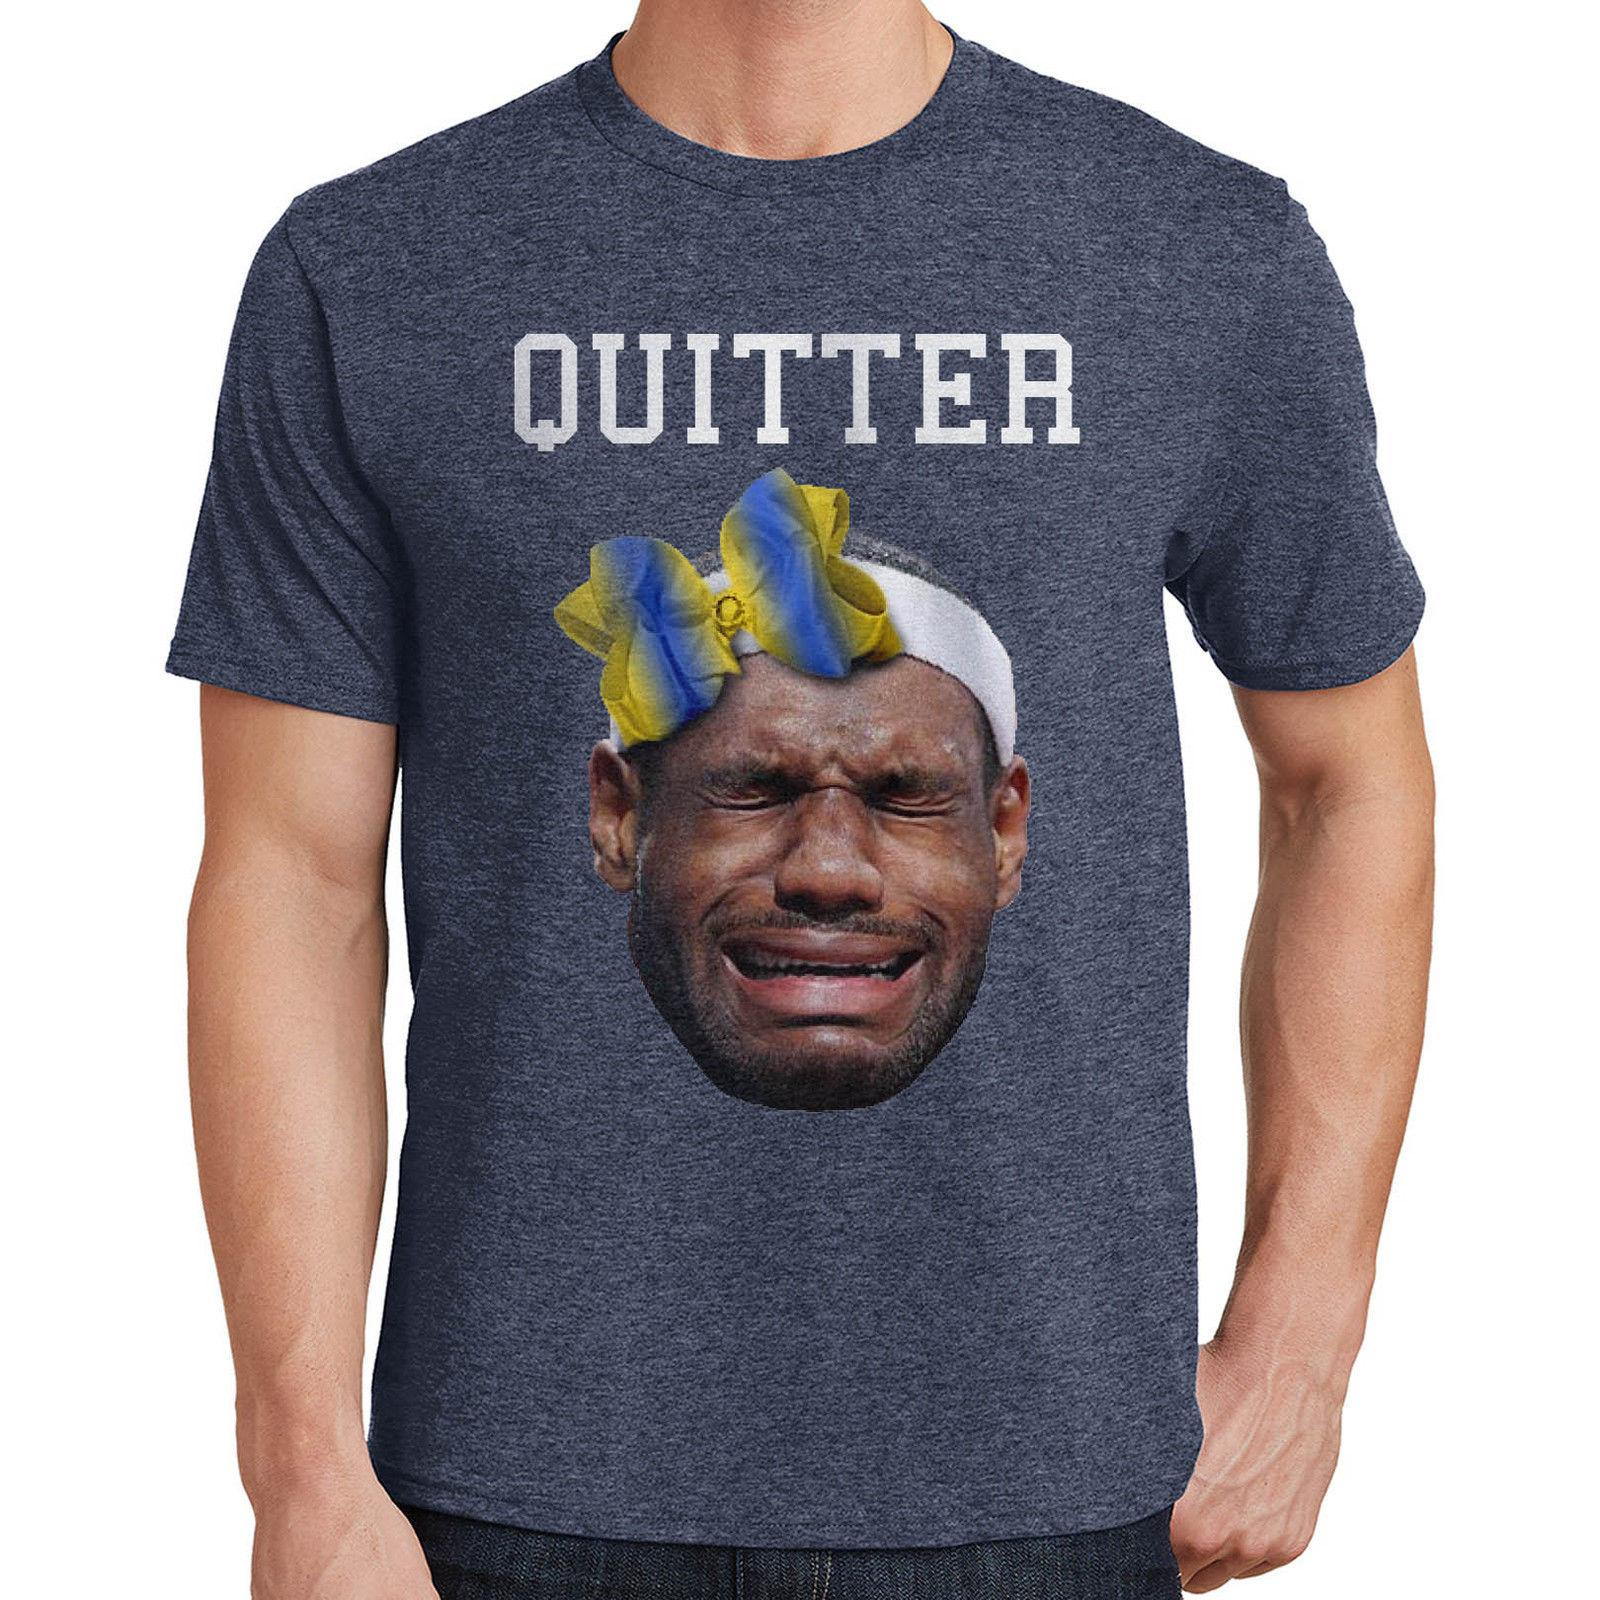 84187a5177ce Lebron James T Shirt Crying Quitter2226 Funny Unisex Casual Mens Formal  Shirts Buy T Shirts Online From Afterlightclothing, $12.96| DHgate.Com